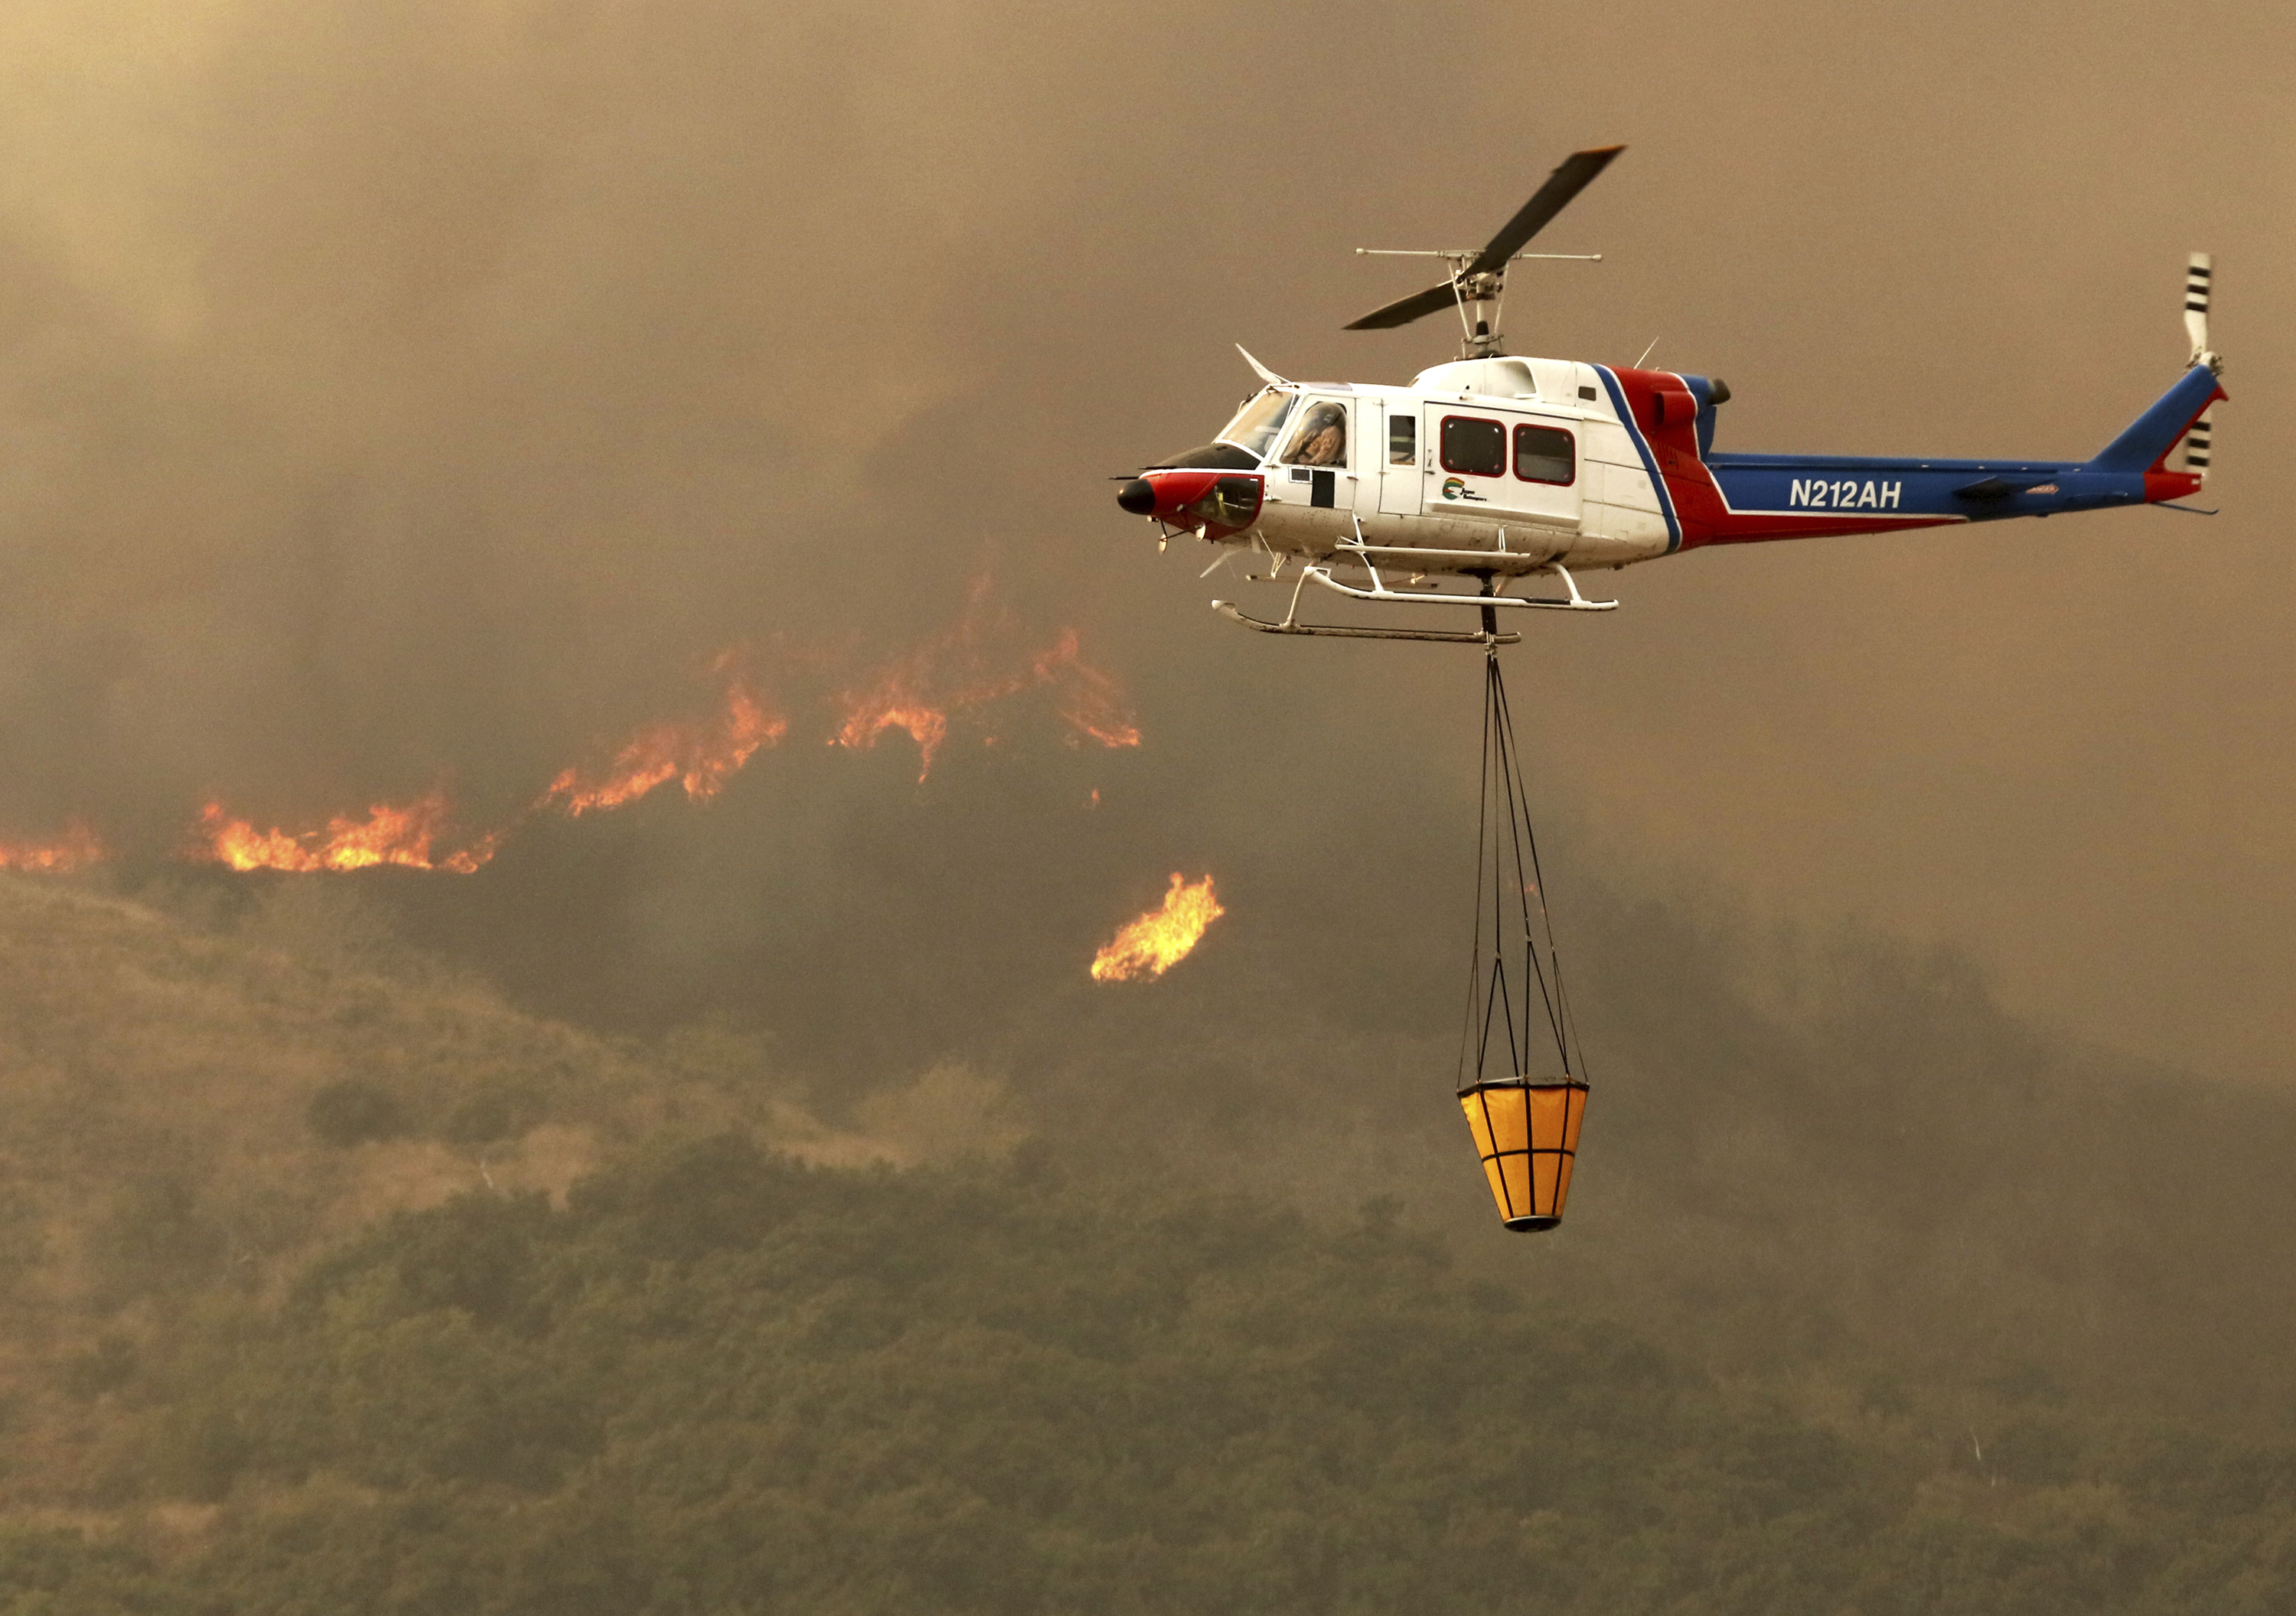 "<div class=""meta image-caption""><div class=""origin-logo origin-image none""><span>none</span></div><span class=""caption-text"">A helicopter makes a water drop on hot spots after the Thomas fire swept through Ventura, Calif., Tuesday, Dec. 5, 2017. (Daniel Dreifuss via AP)</span></div>"